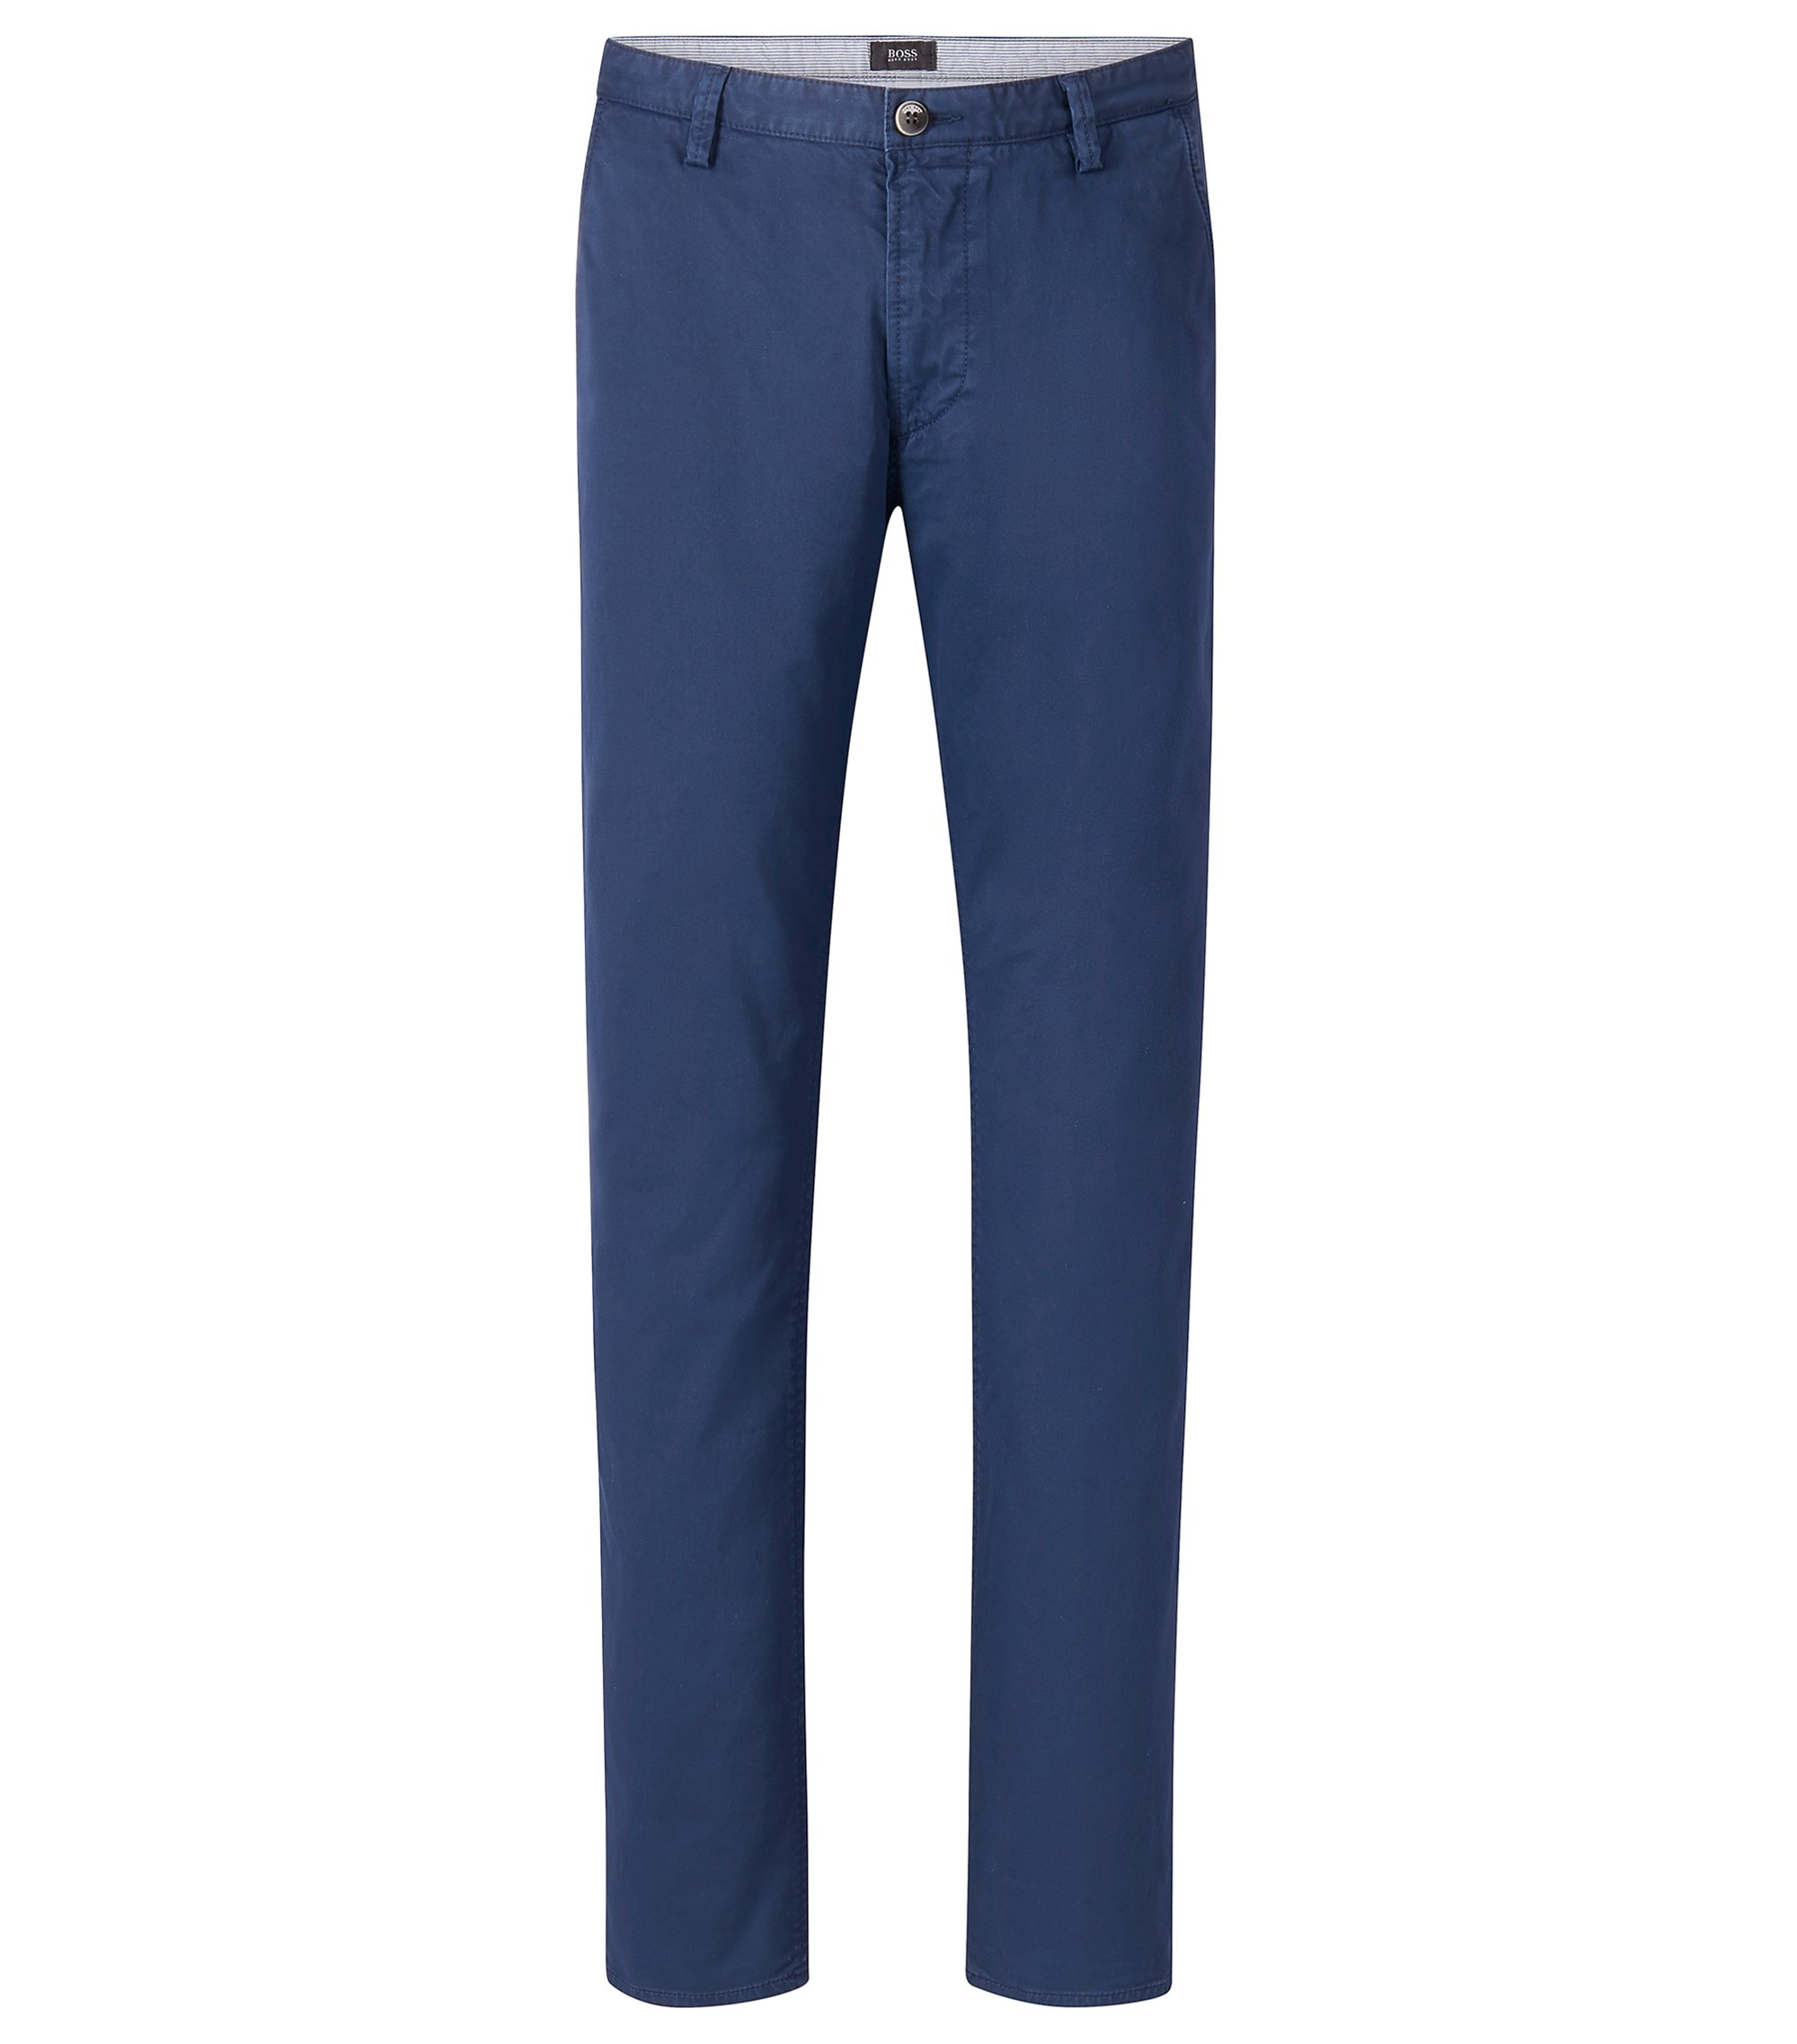 Stretch Cotton Colored Chino Pant, Slim Fit | Rice, Open Blue